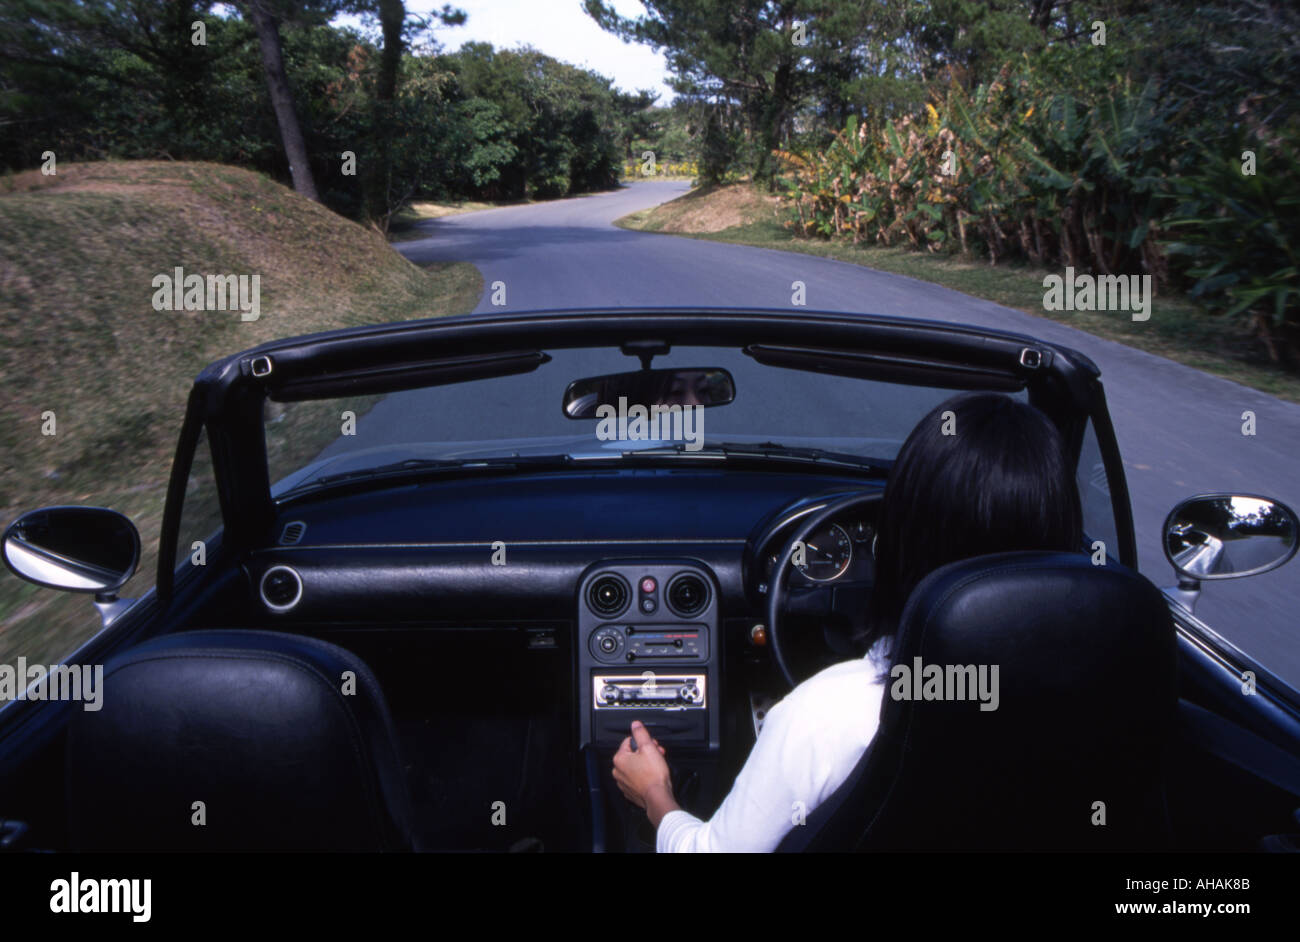 https://c8.alamy.com/comp/AHAK8B/japanese-girl-driving-a-1989-mazda-miata-mx5-mx-5-eunos-roadster-convertible-AHAK8B.jpg